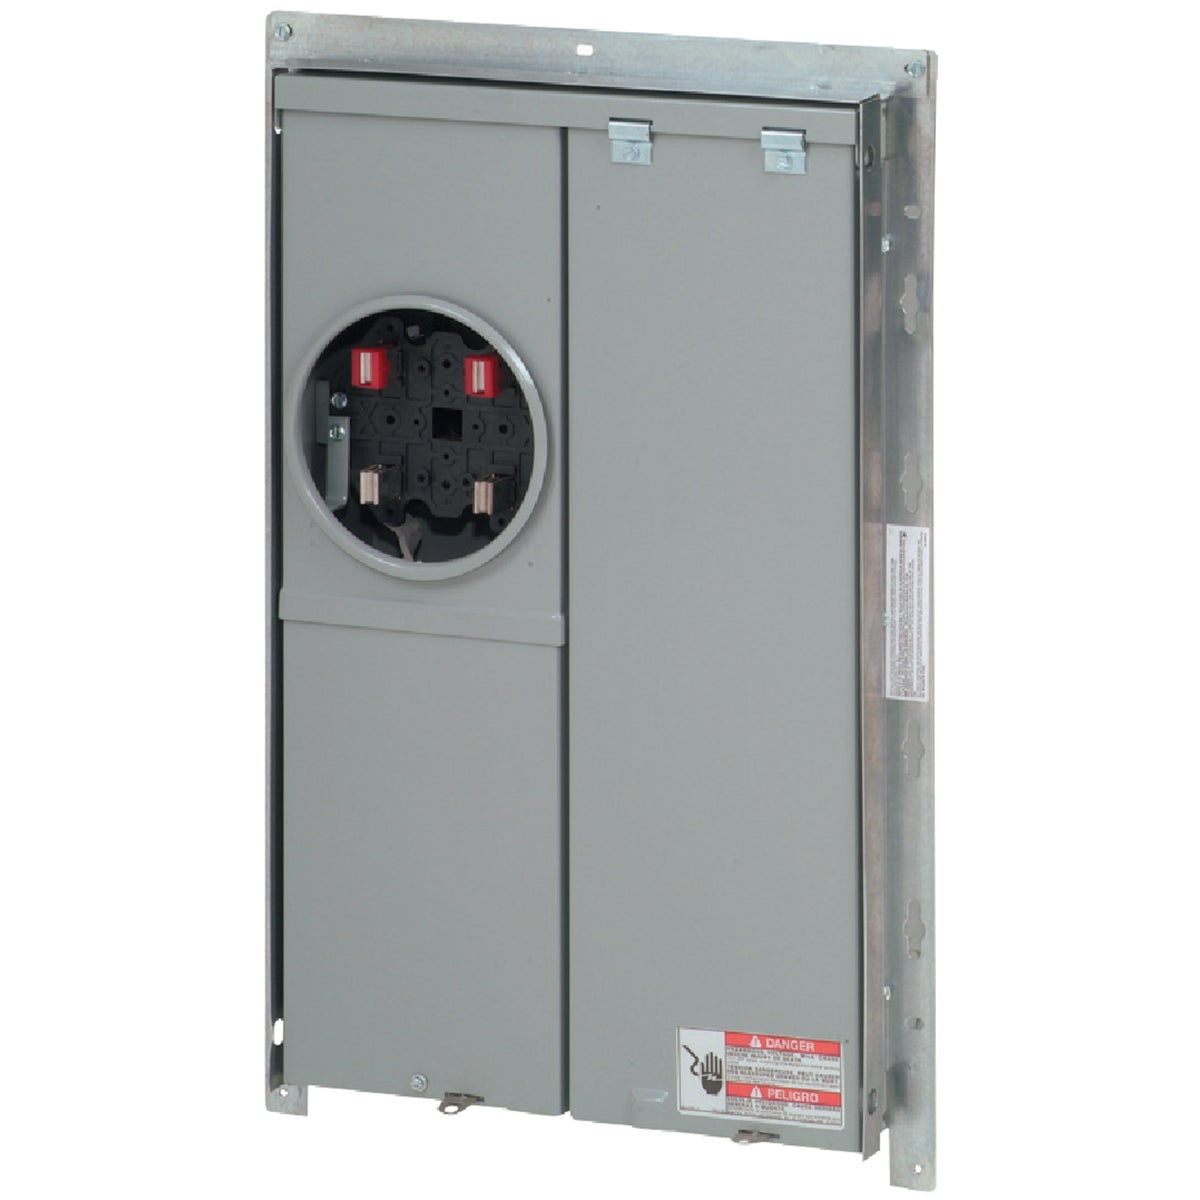 100A METER BREAKER PANEL - MBE1224B100BTF by Eaton Corporation